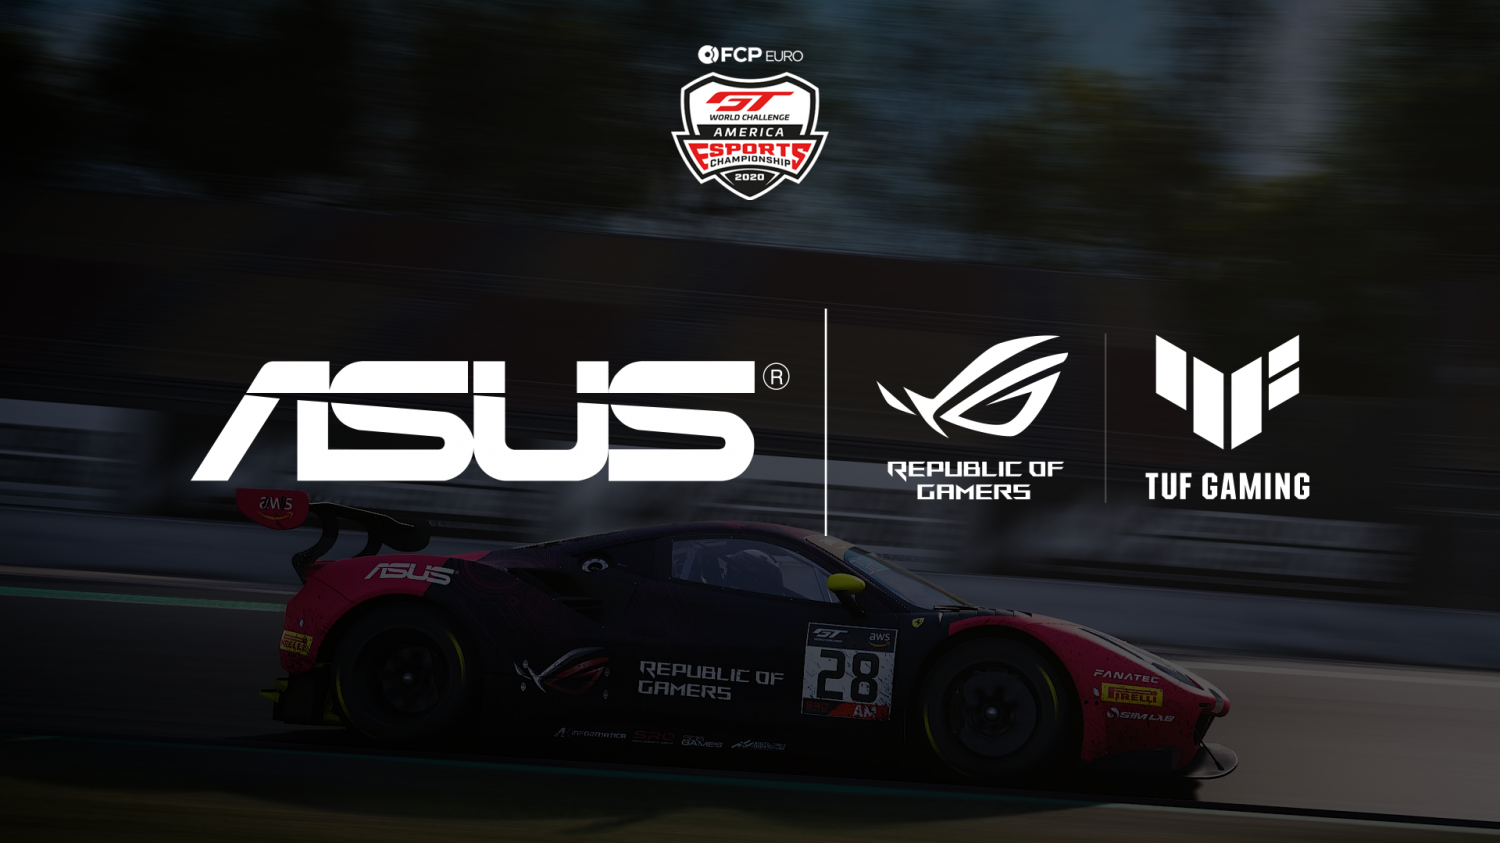 ASUS Republic of Gamers and TUF Gaming Rejoin Season 2 as Official Hardware Partner of FCP Euro GT World Challenge America Esports Championship